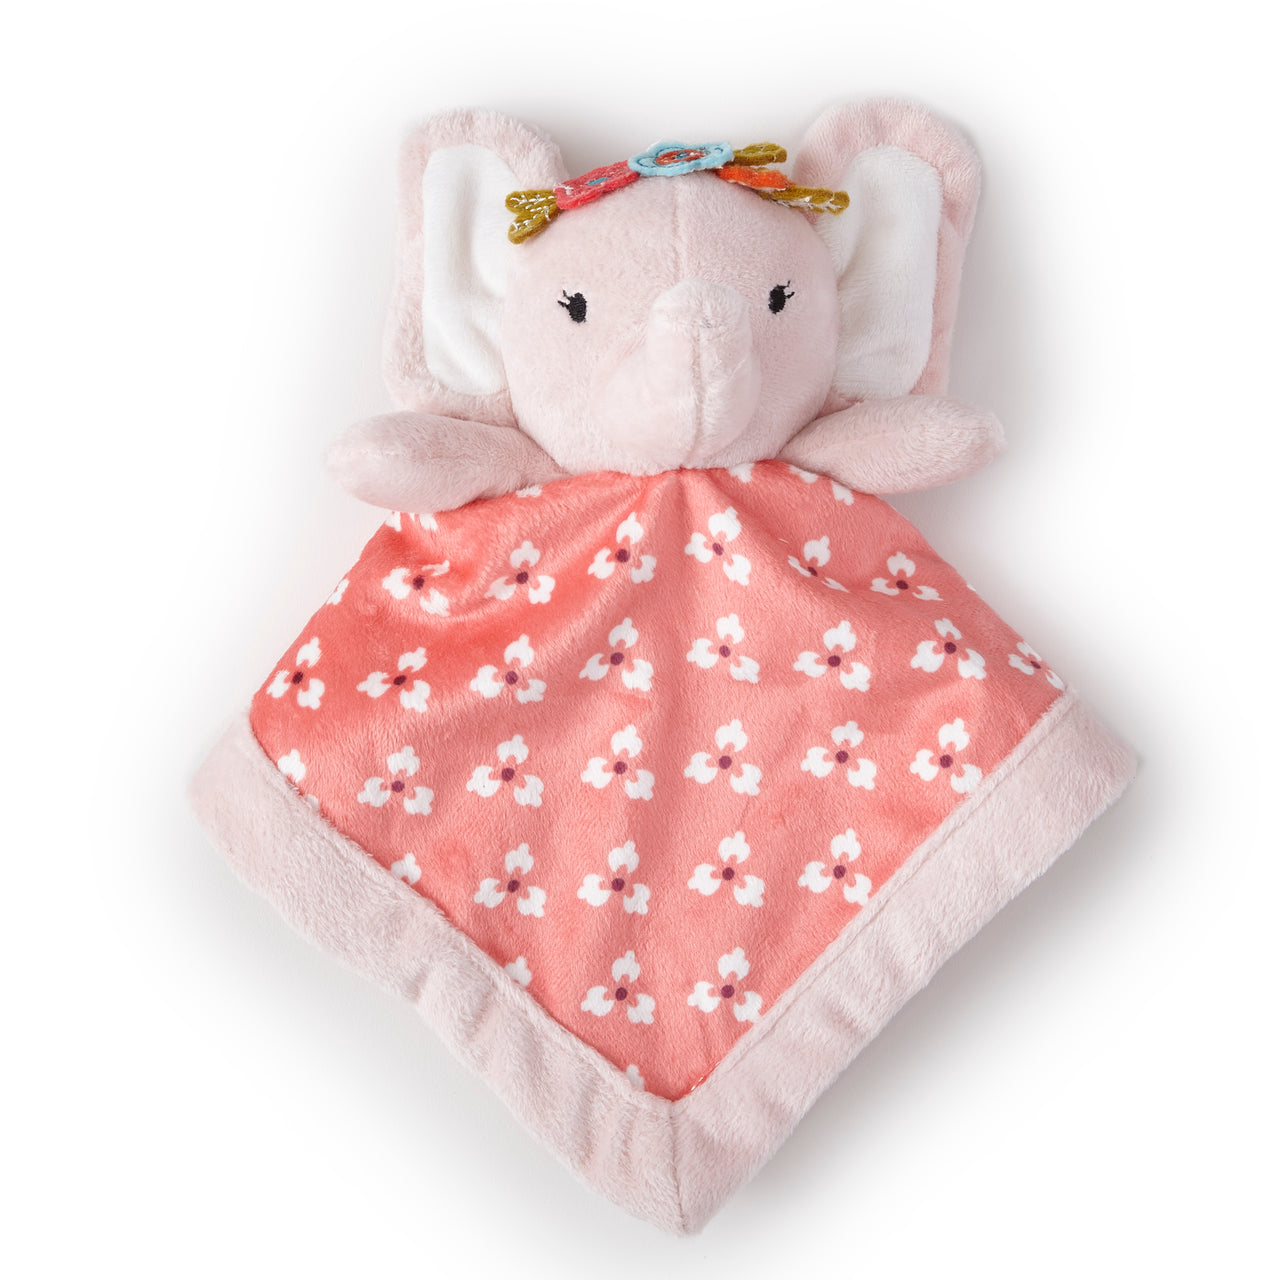 Elephant Plush Security Blanket - Pink